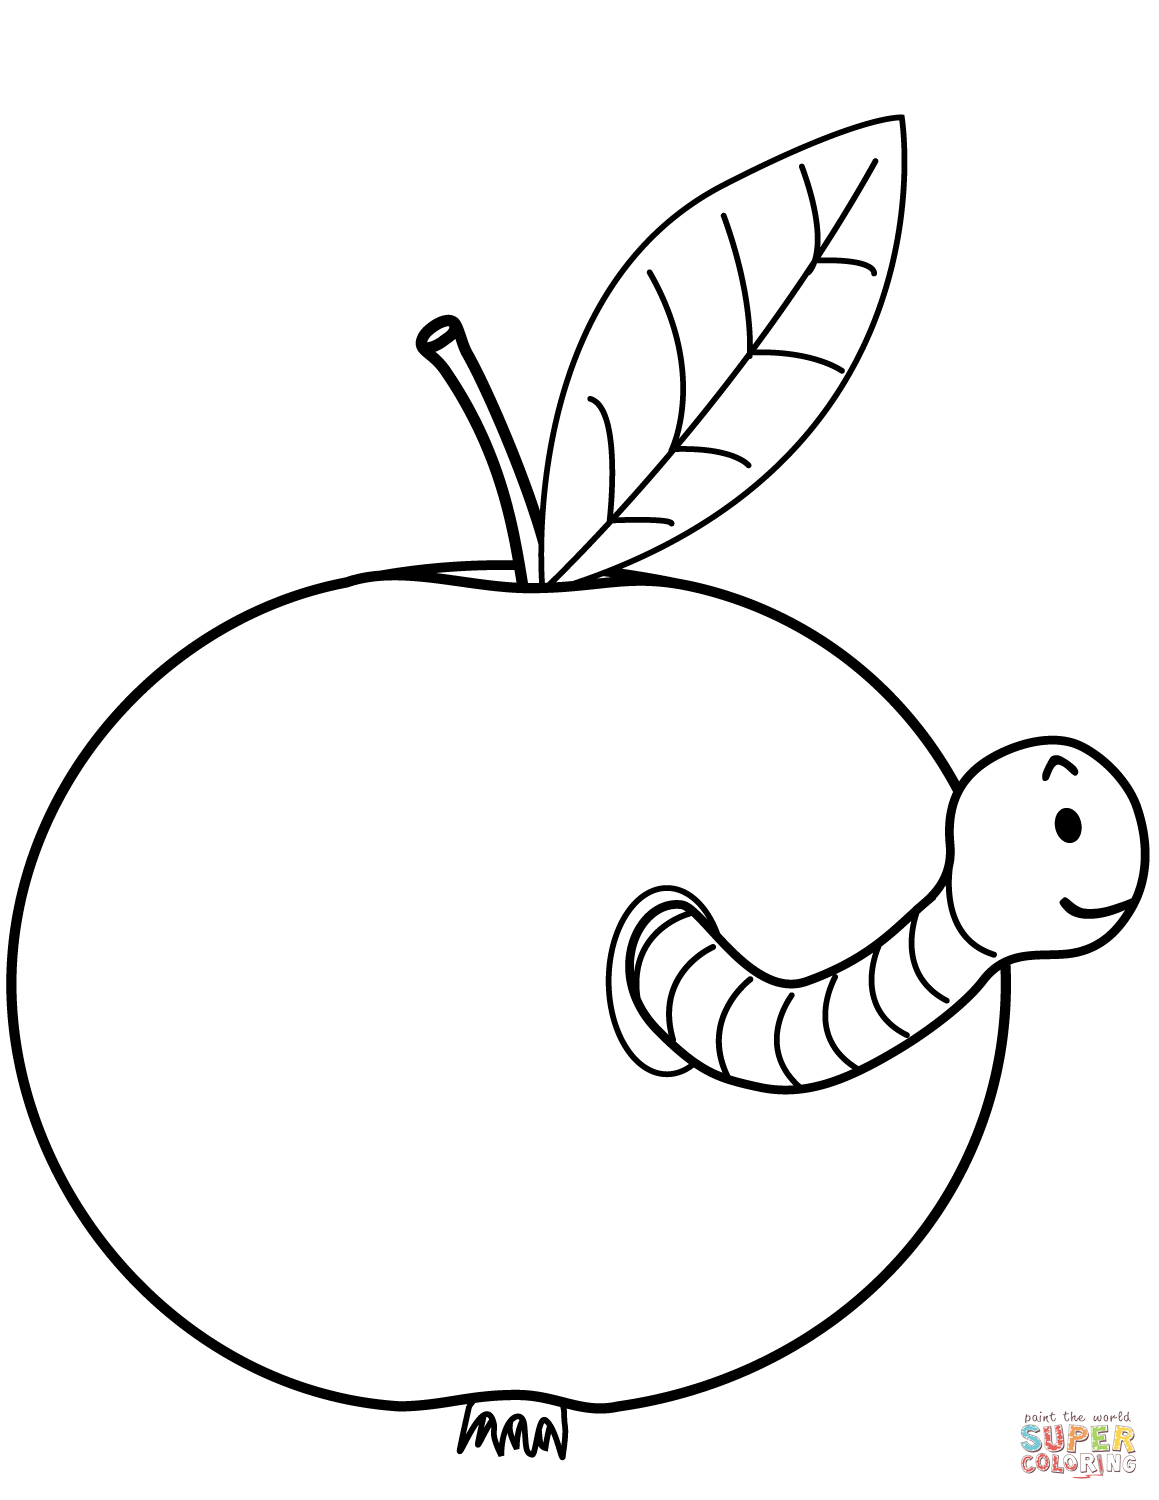 Apples Coloring Pages | Free Coloring Pages - Free Printable Worm Worksheets